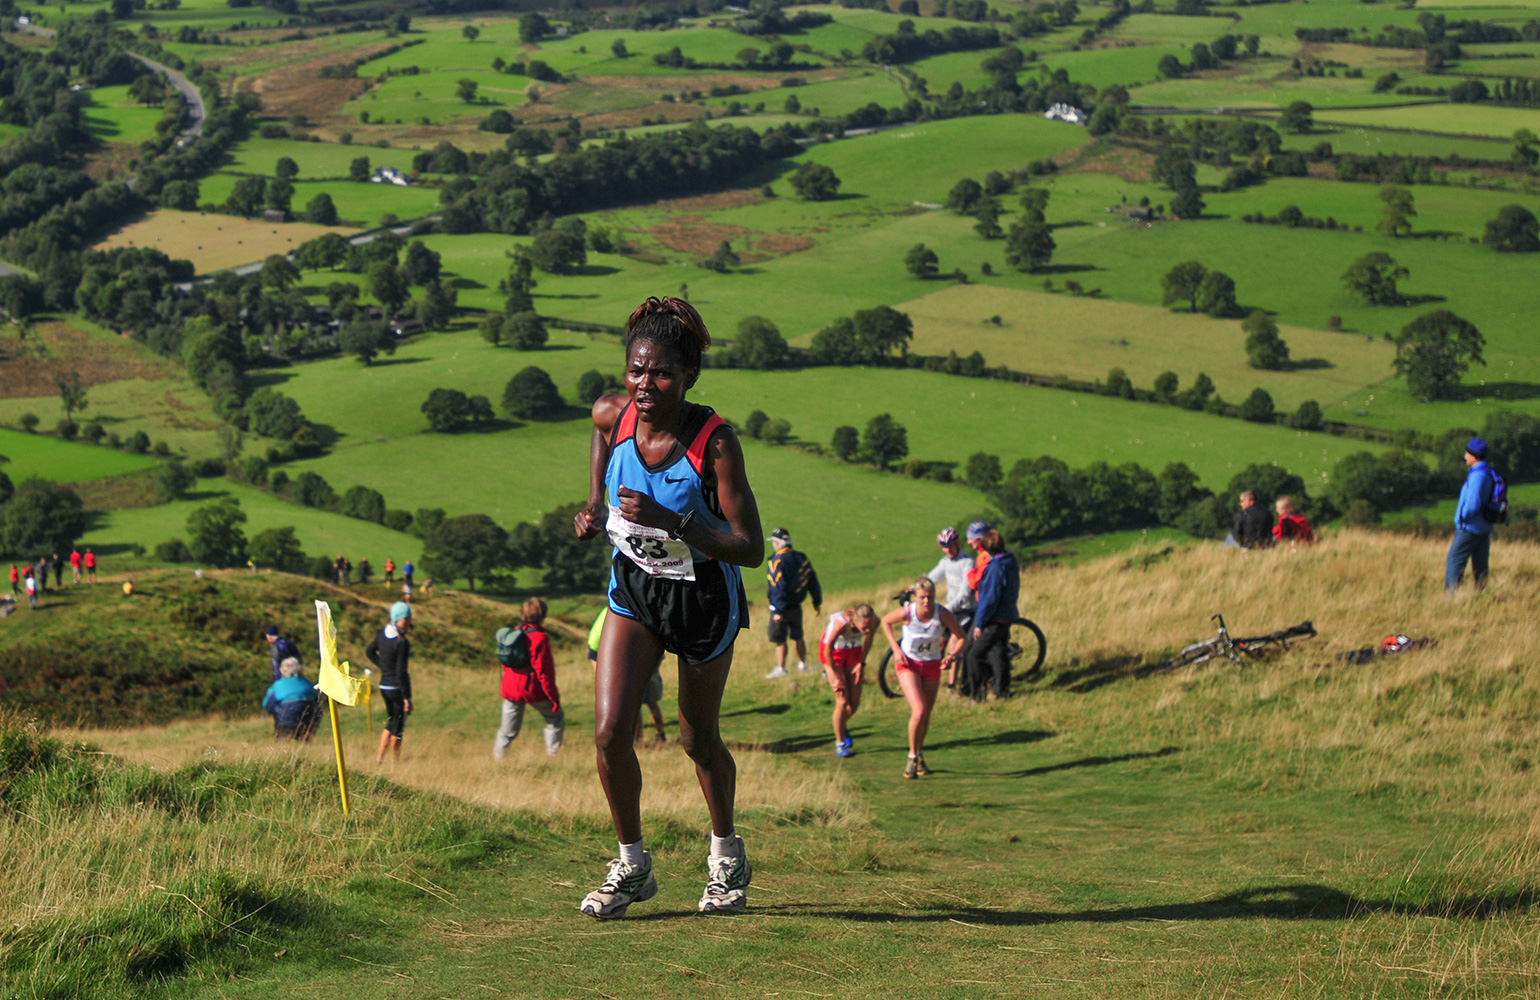 I shot this event for the I.A.U. in Keswick in September 2009. Here Pamela Bundotich of Kenya chases down the leaders in the Womens' Fell Race on Latrigg. She went on to win the bronze medal.